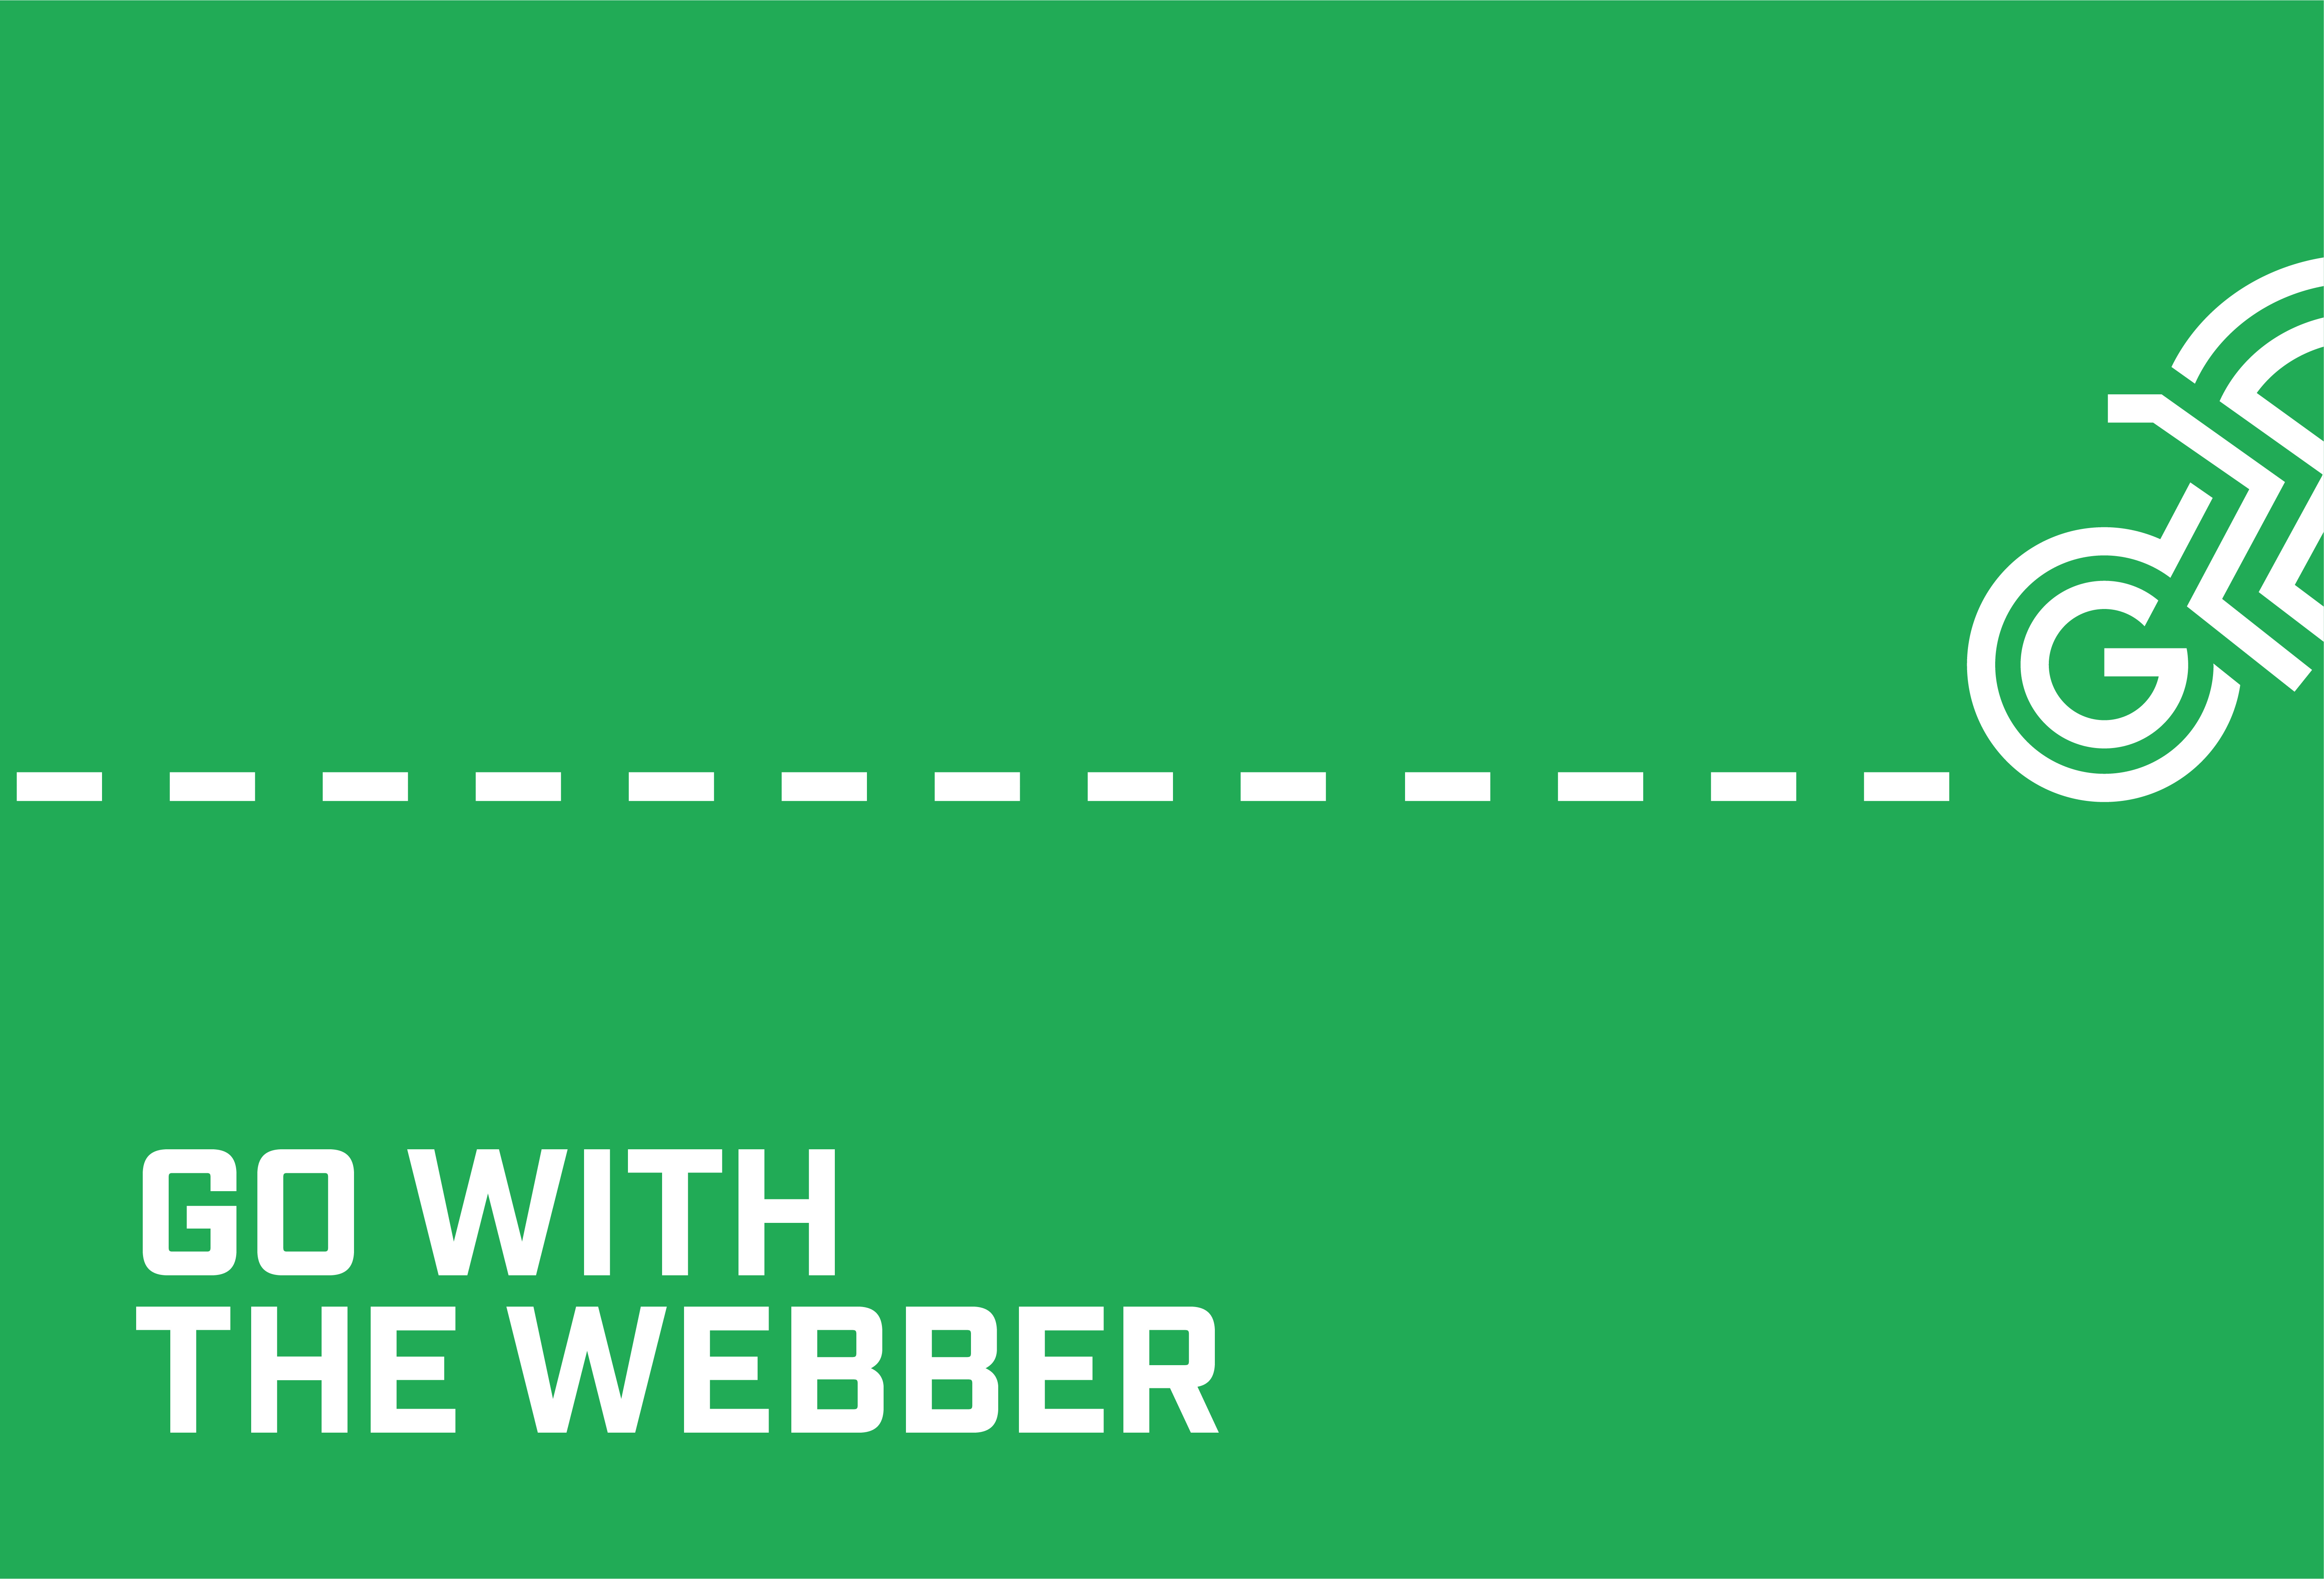 go with the webber cycling tour ad design